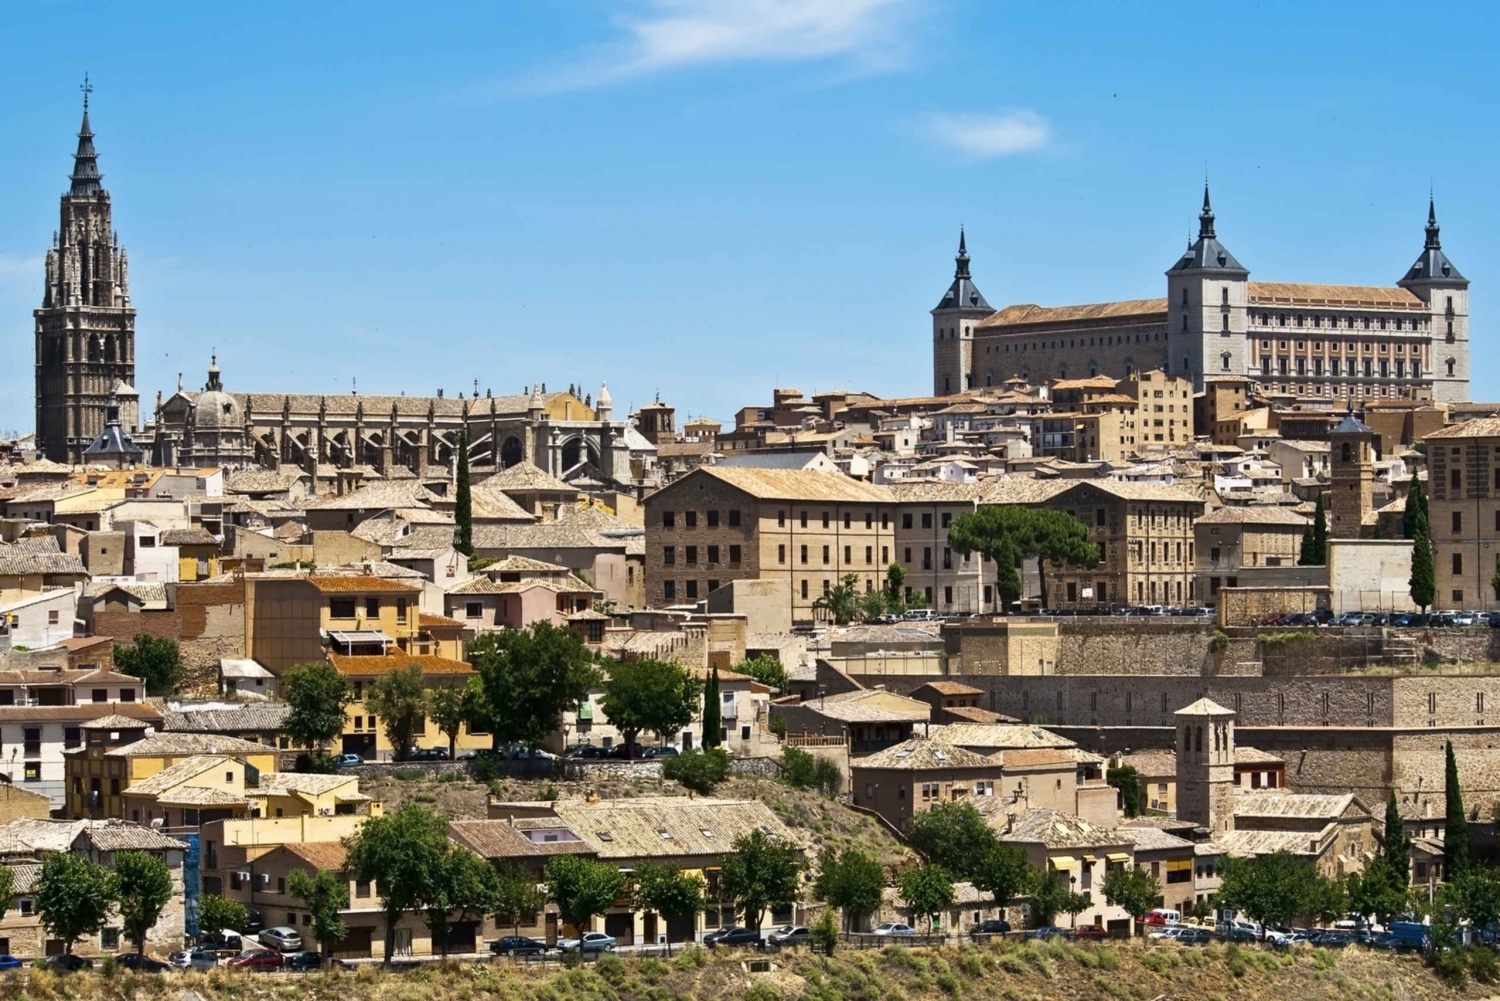 Toledo & Royal Site of Aranjuez: Guided Tour from Madrid